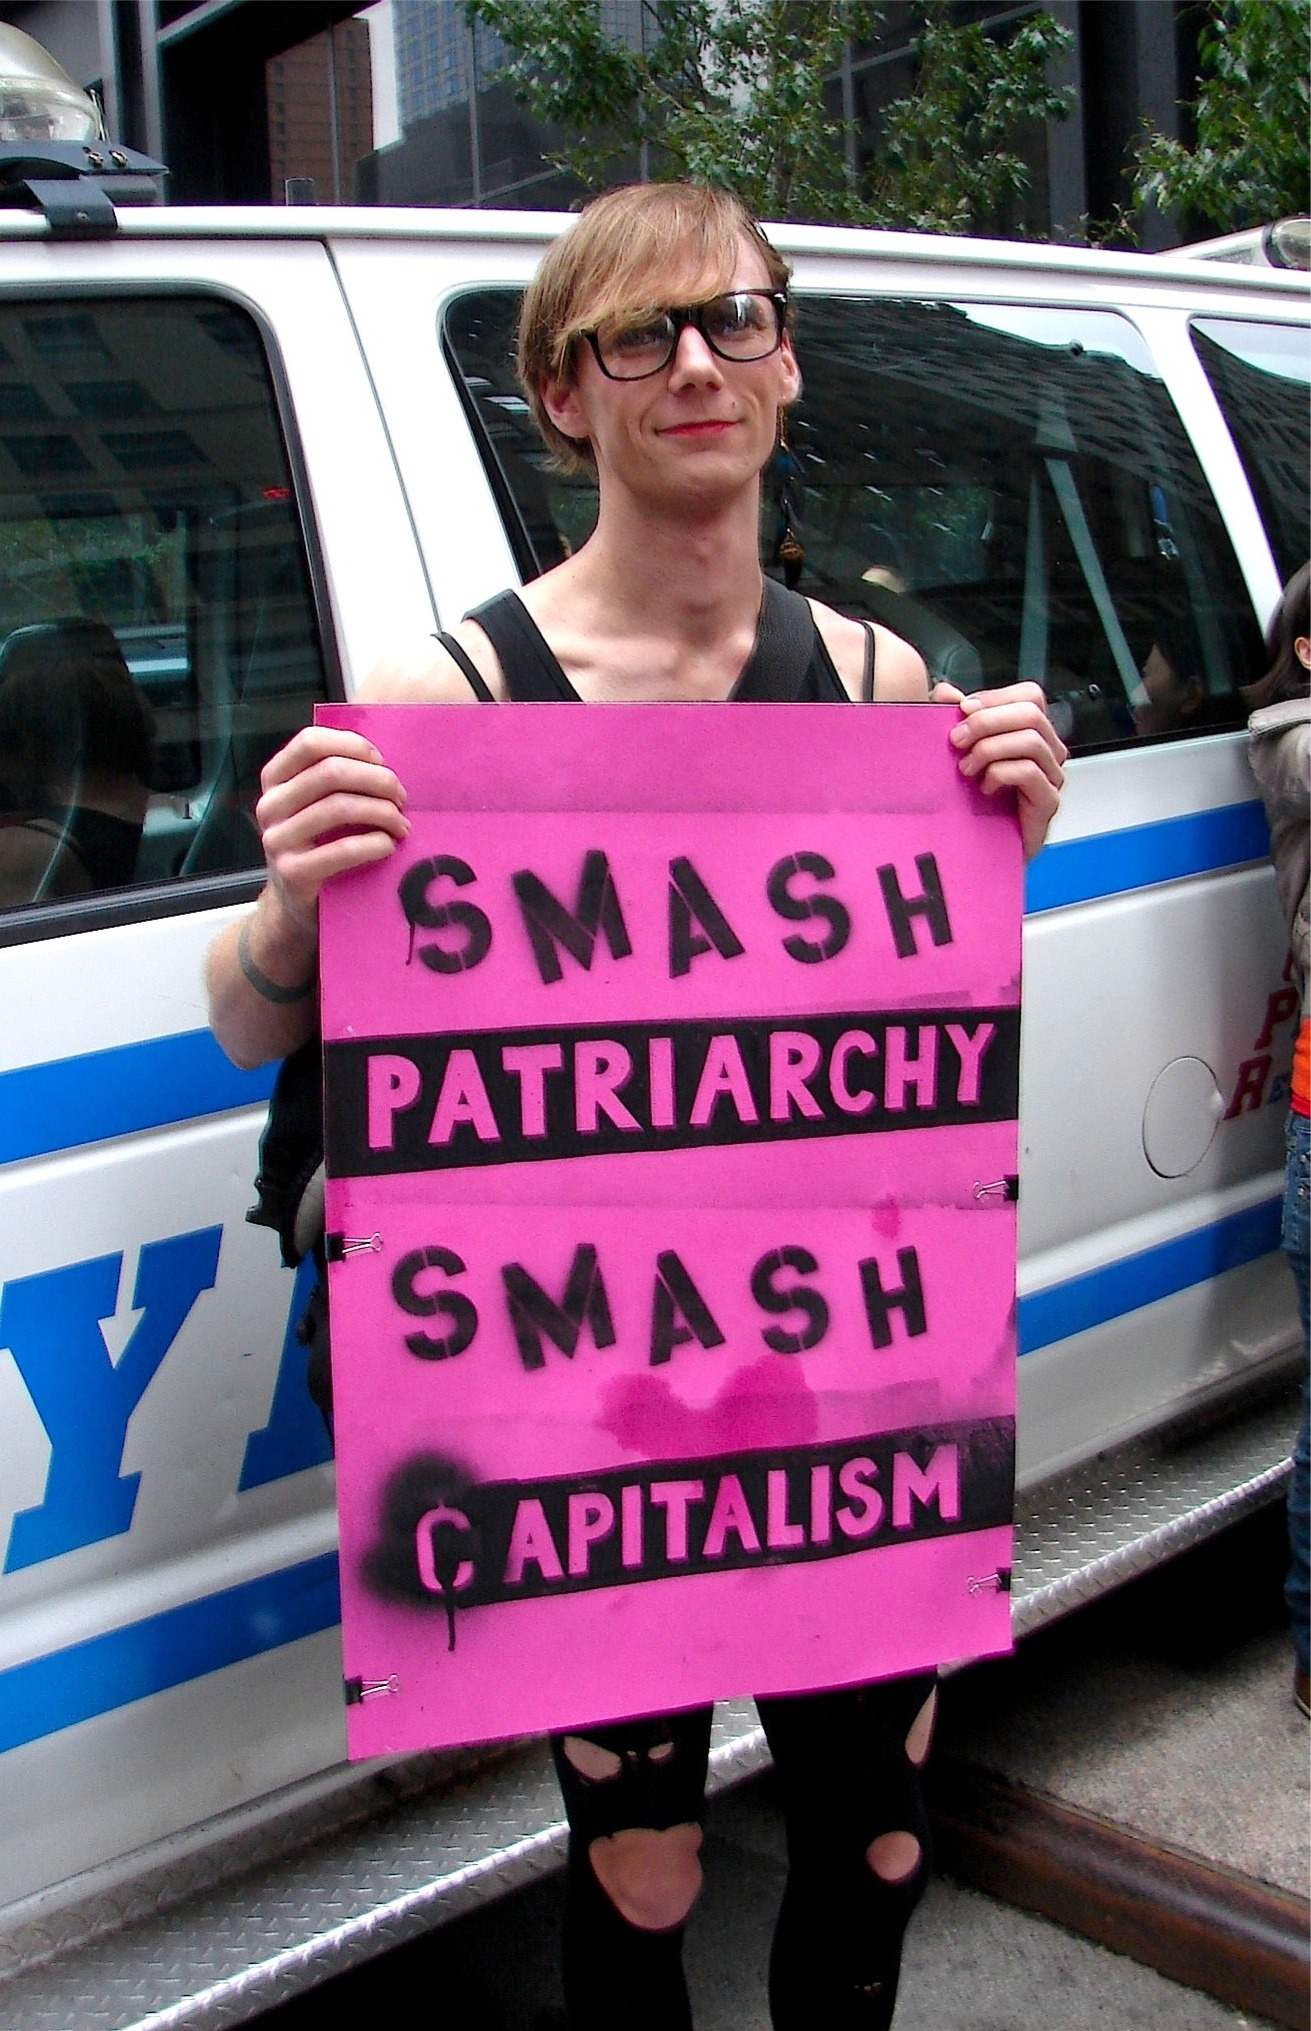 patriarchy essay the yellow essay essays on the yellow essay  smash patriarchy america psycho occupy wall street photo essay smash patriarchy